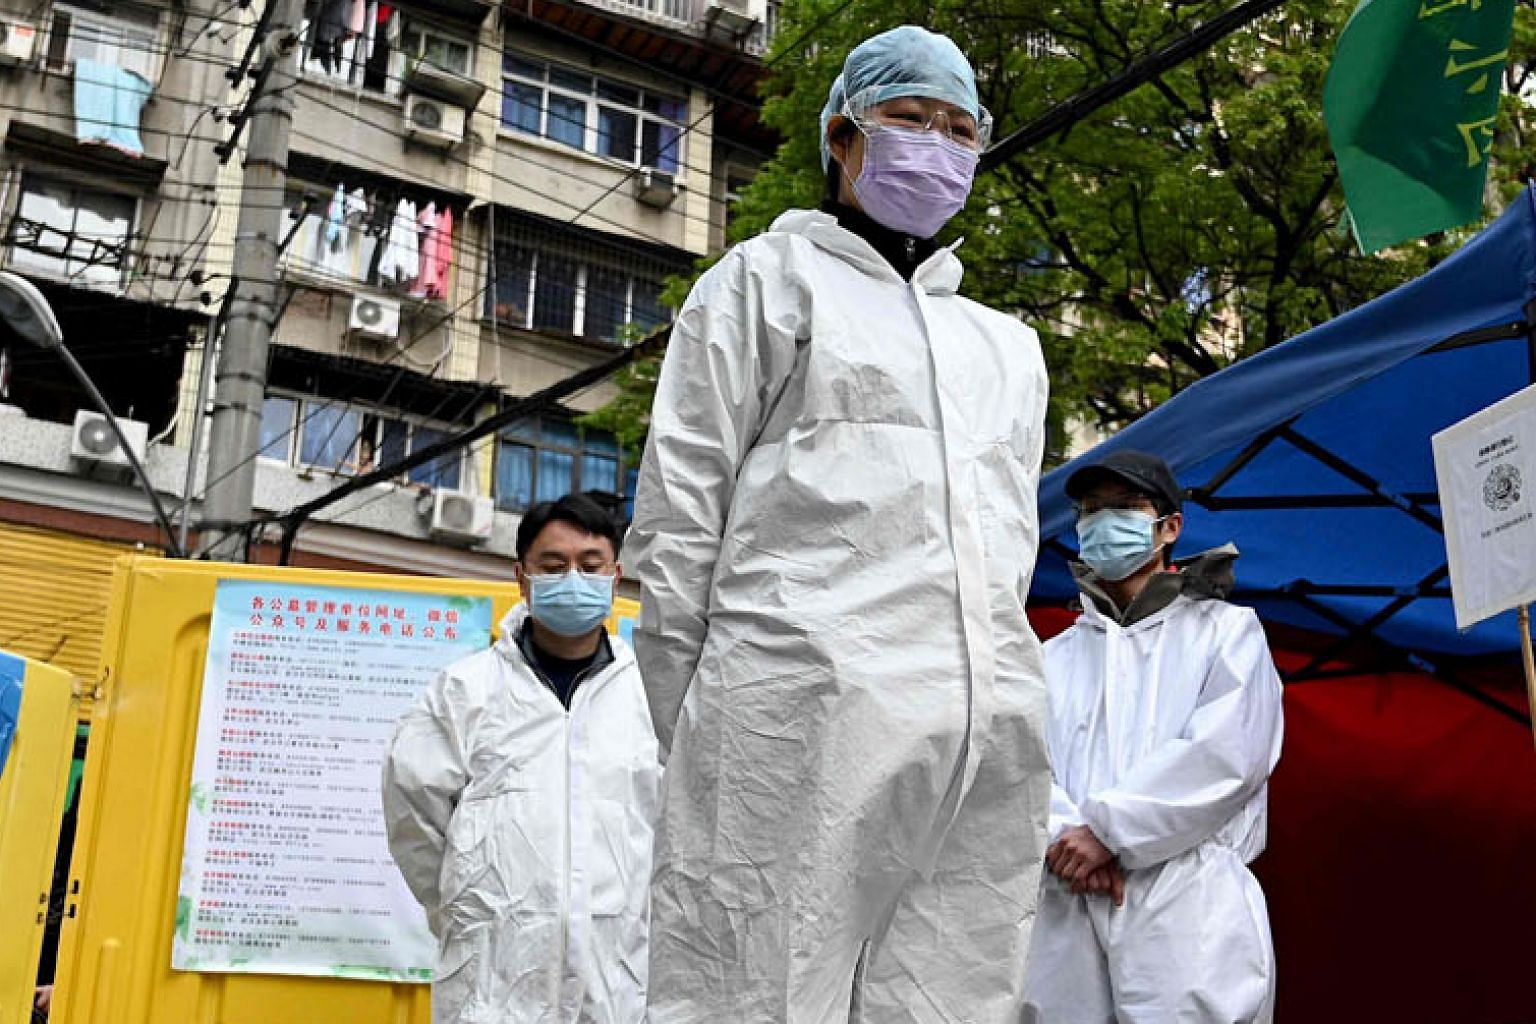 Community volunteers in hazmat suits observing three minutes of silence to mourn those who died in the fight against the Covid-19 pandemic in Wuhan, in central China's Hubei province, last week. Scepticism abounds about the reliability of Chinese off